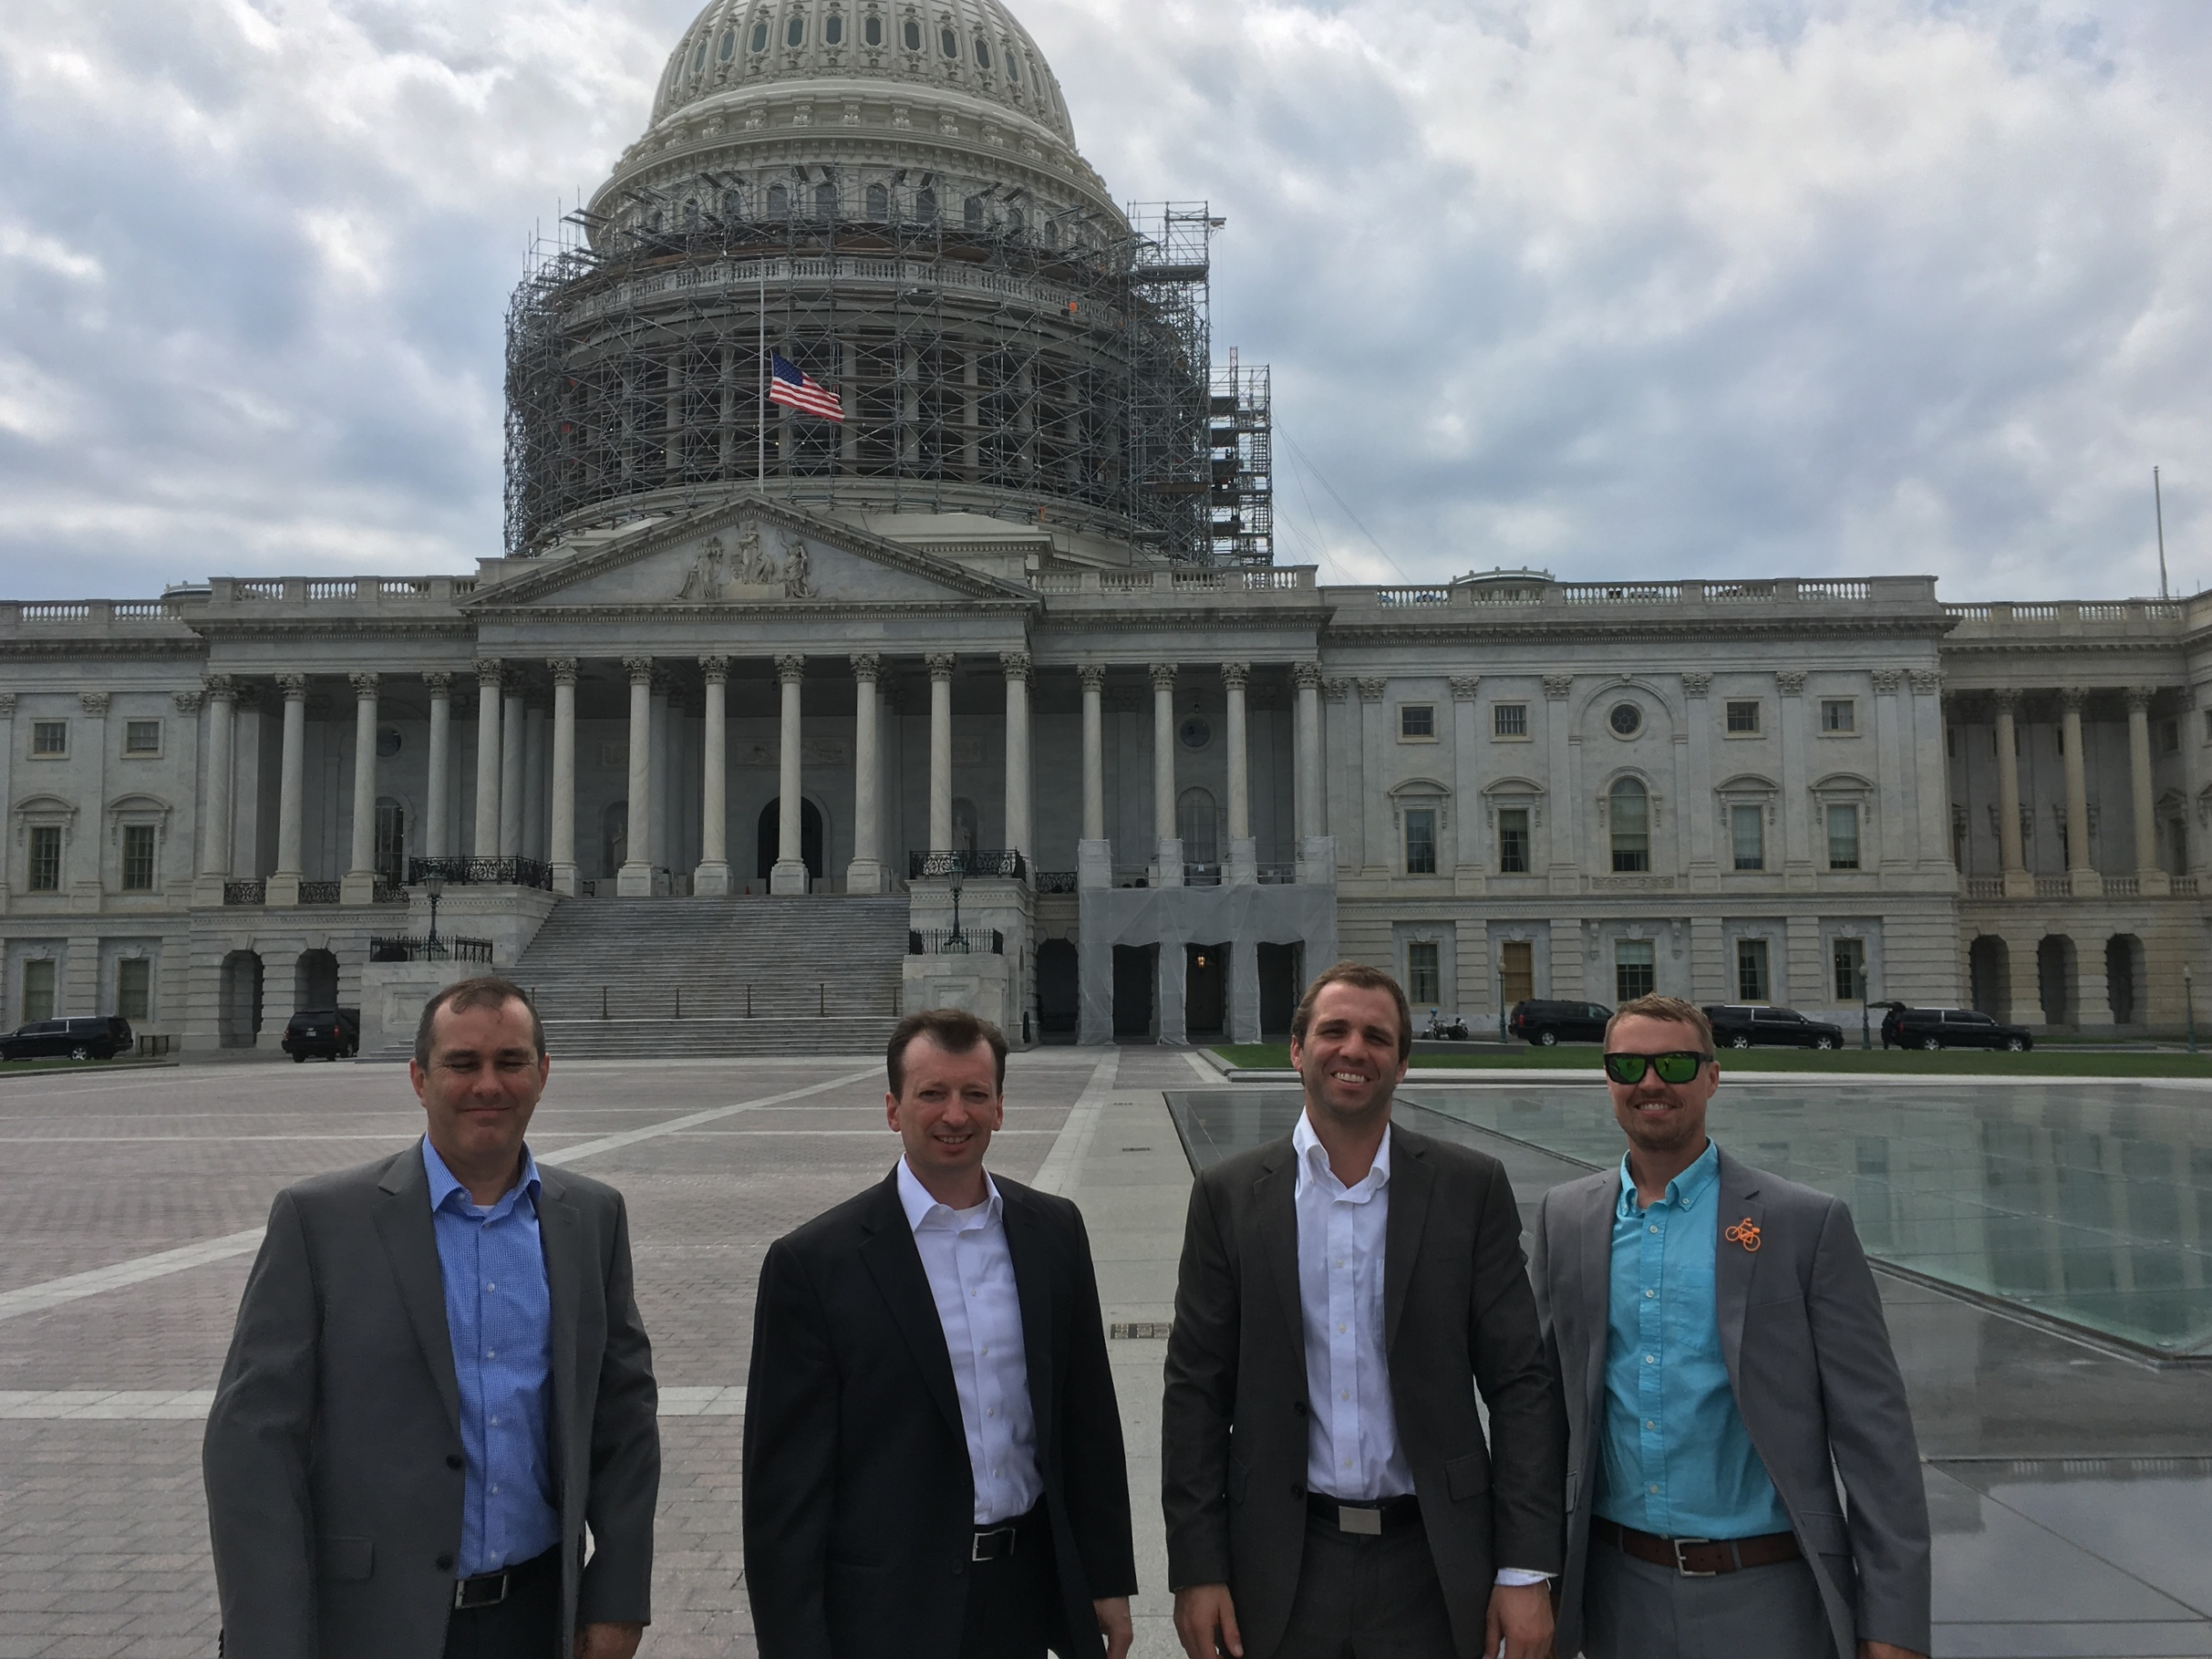 Outdoor Alliance was joined by advocates from Tennessee, Pennsylvania, Massachusetts, New York, and Virginia, to discuss the future of public lands with eastern lawmakers.